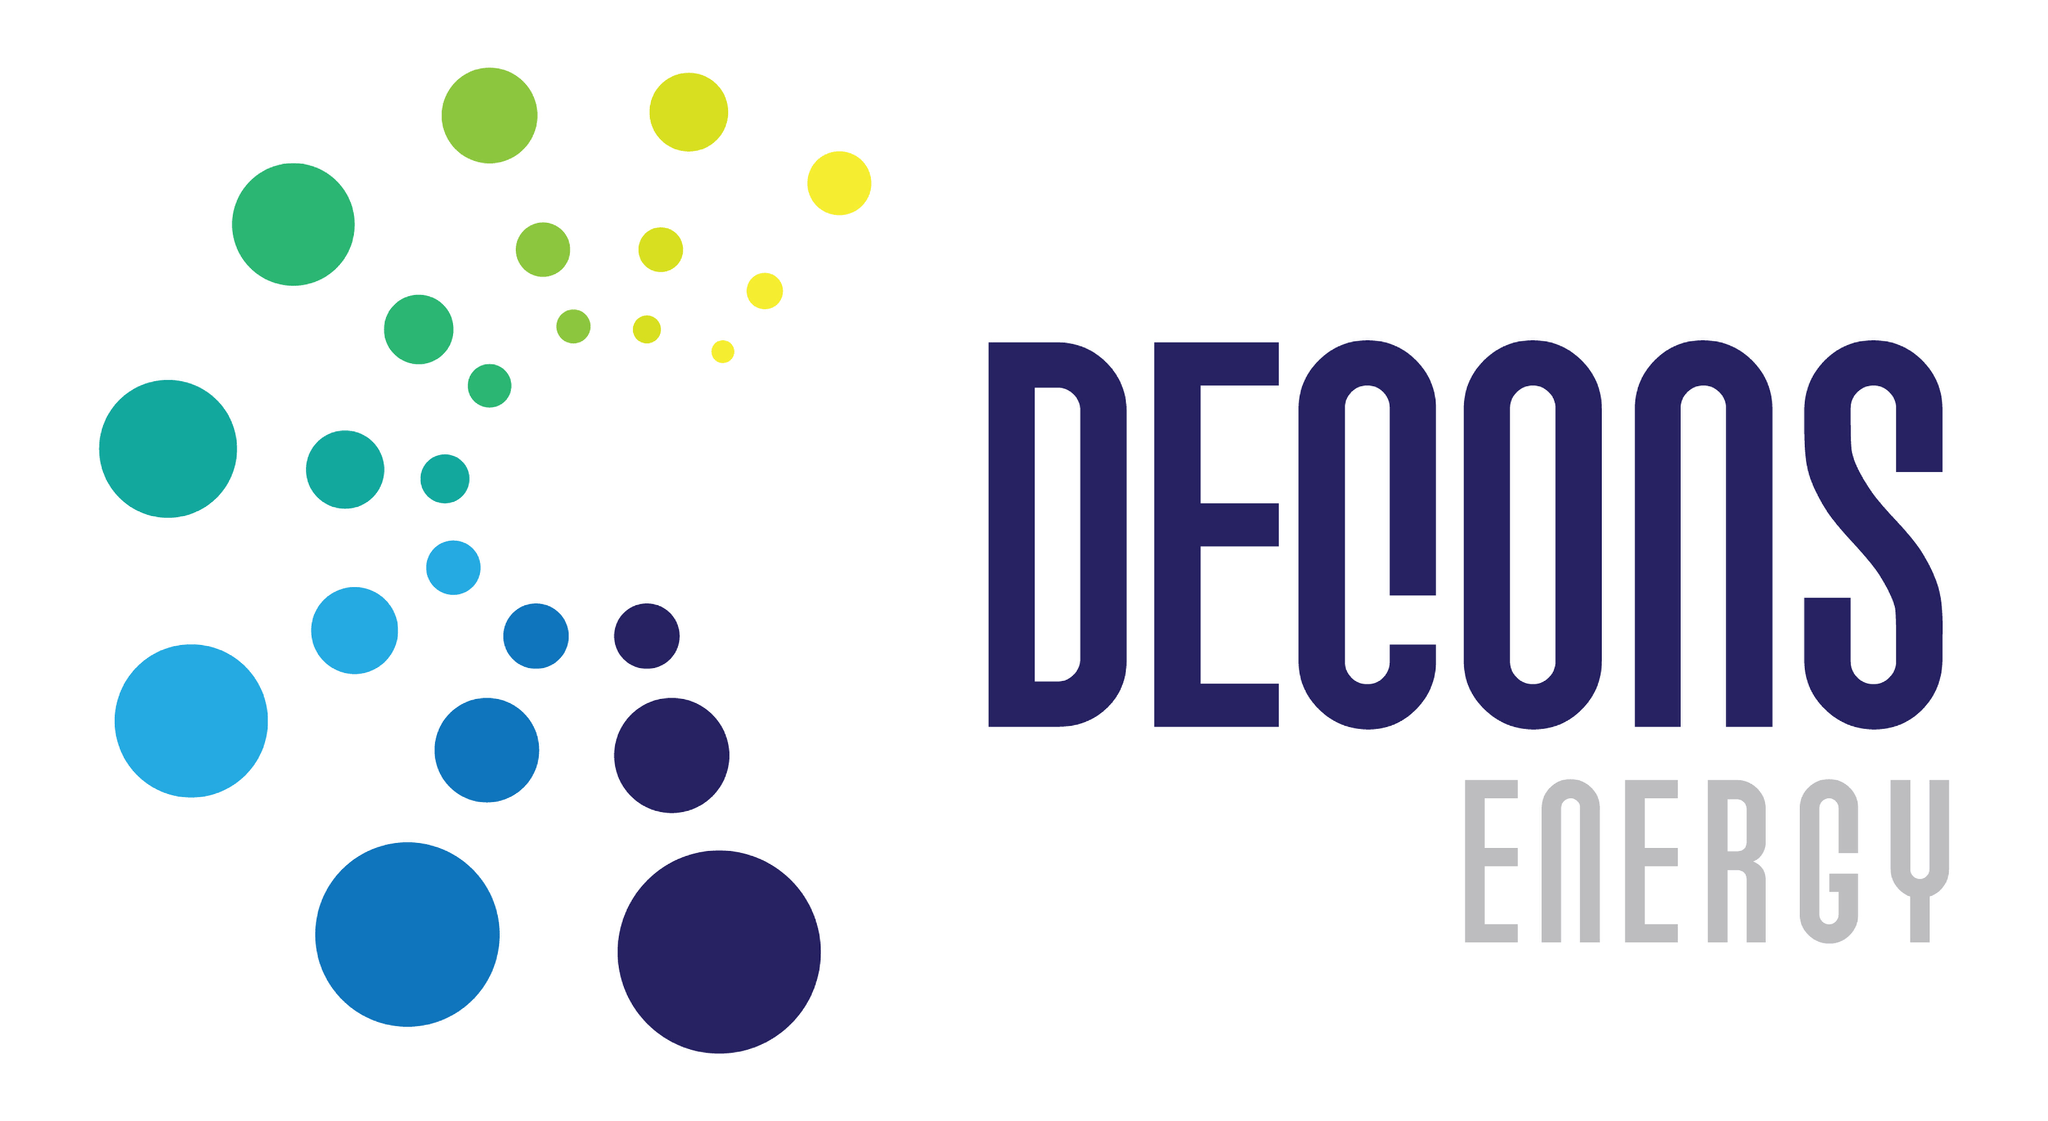 DECONS ENERGY, LLC